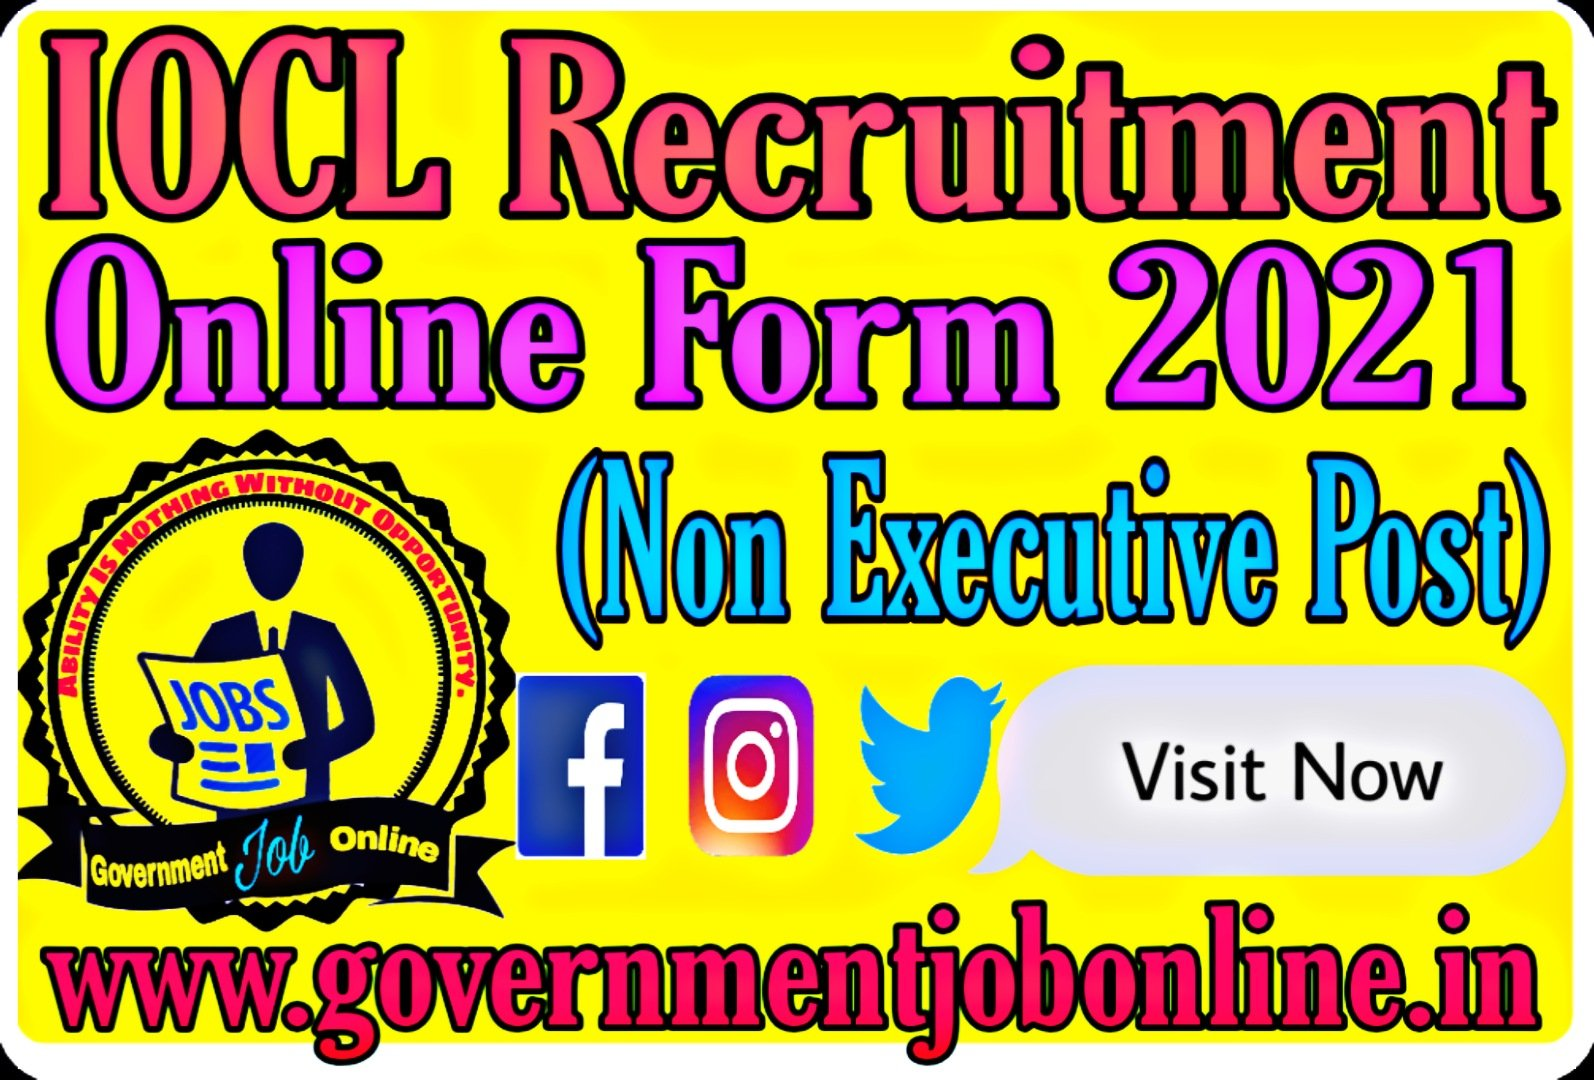 IOCL Recruitment Online Form 2021